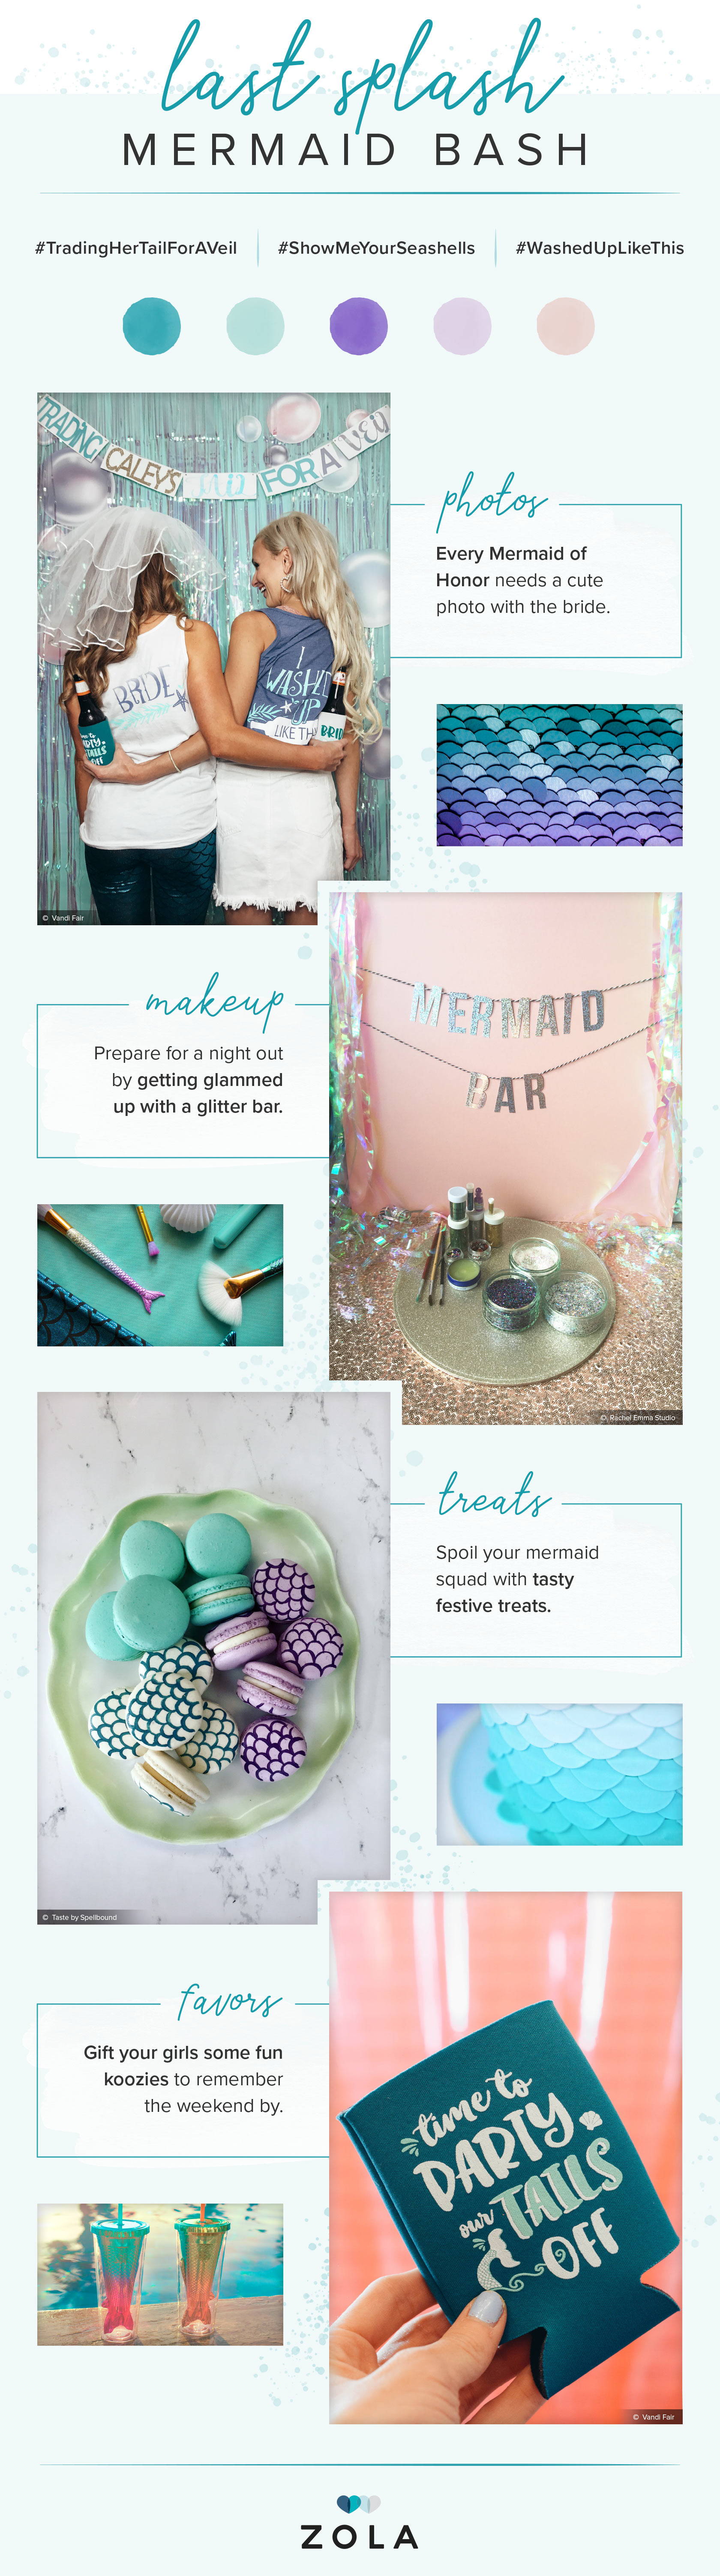 bachelorette-party-ideas-mermaid